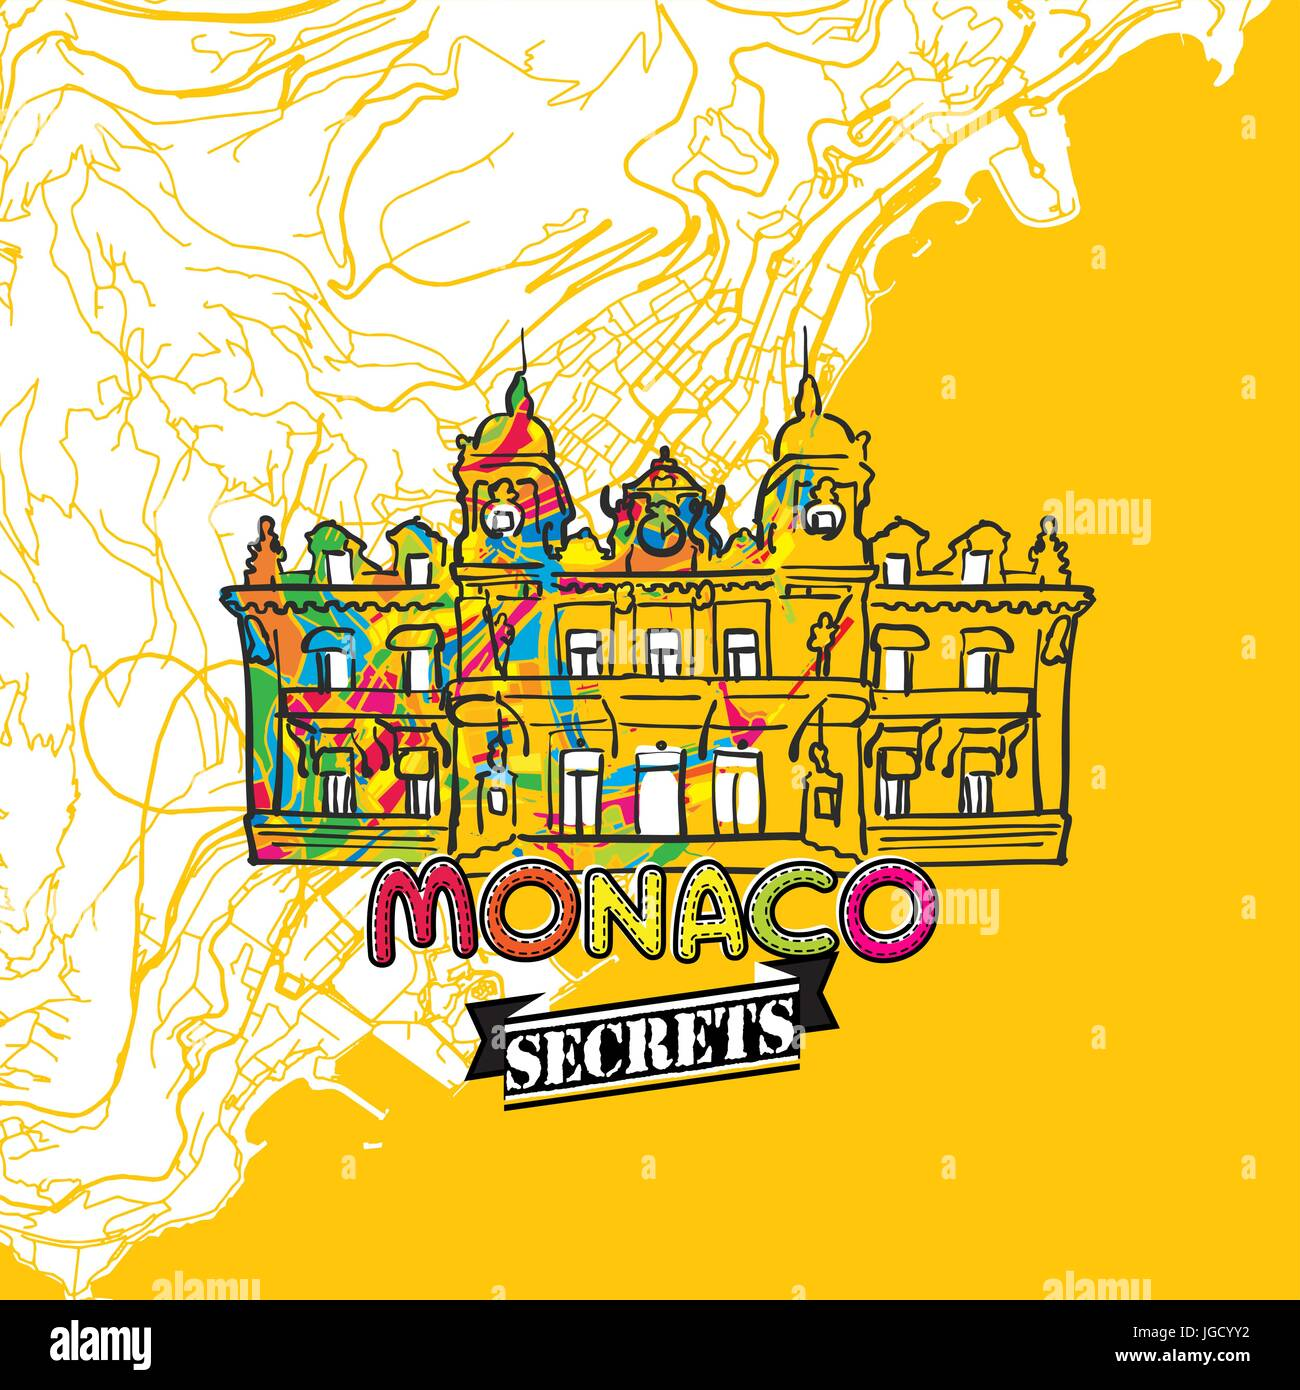 Monaco Travel Secrets Art Map for mapping experts and travel guides